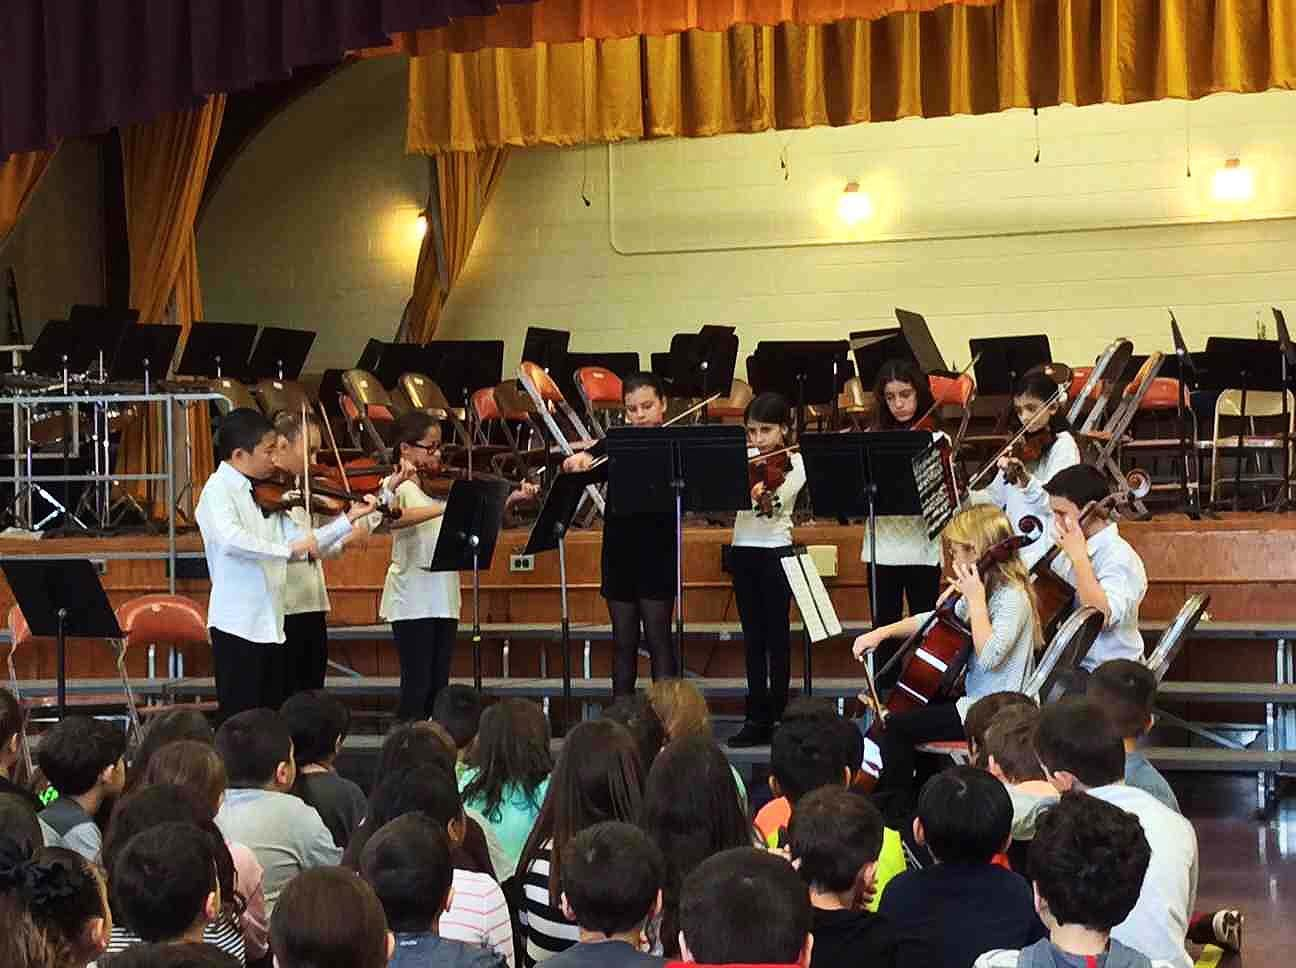 Members of the Birch School orchestra performed winter classics for students and teachers.